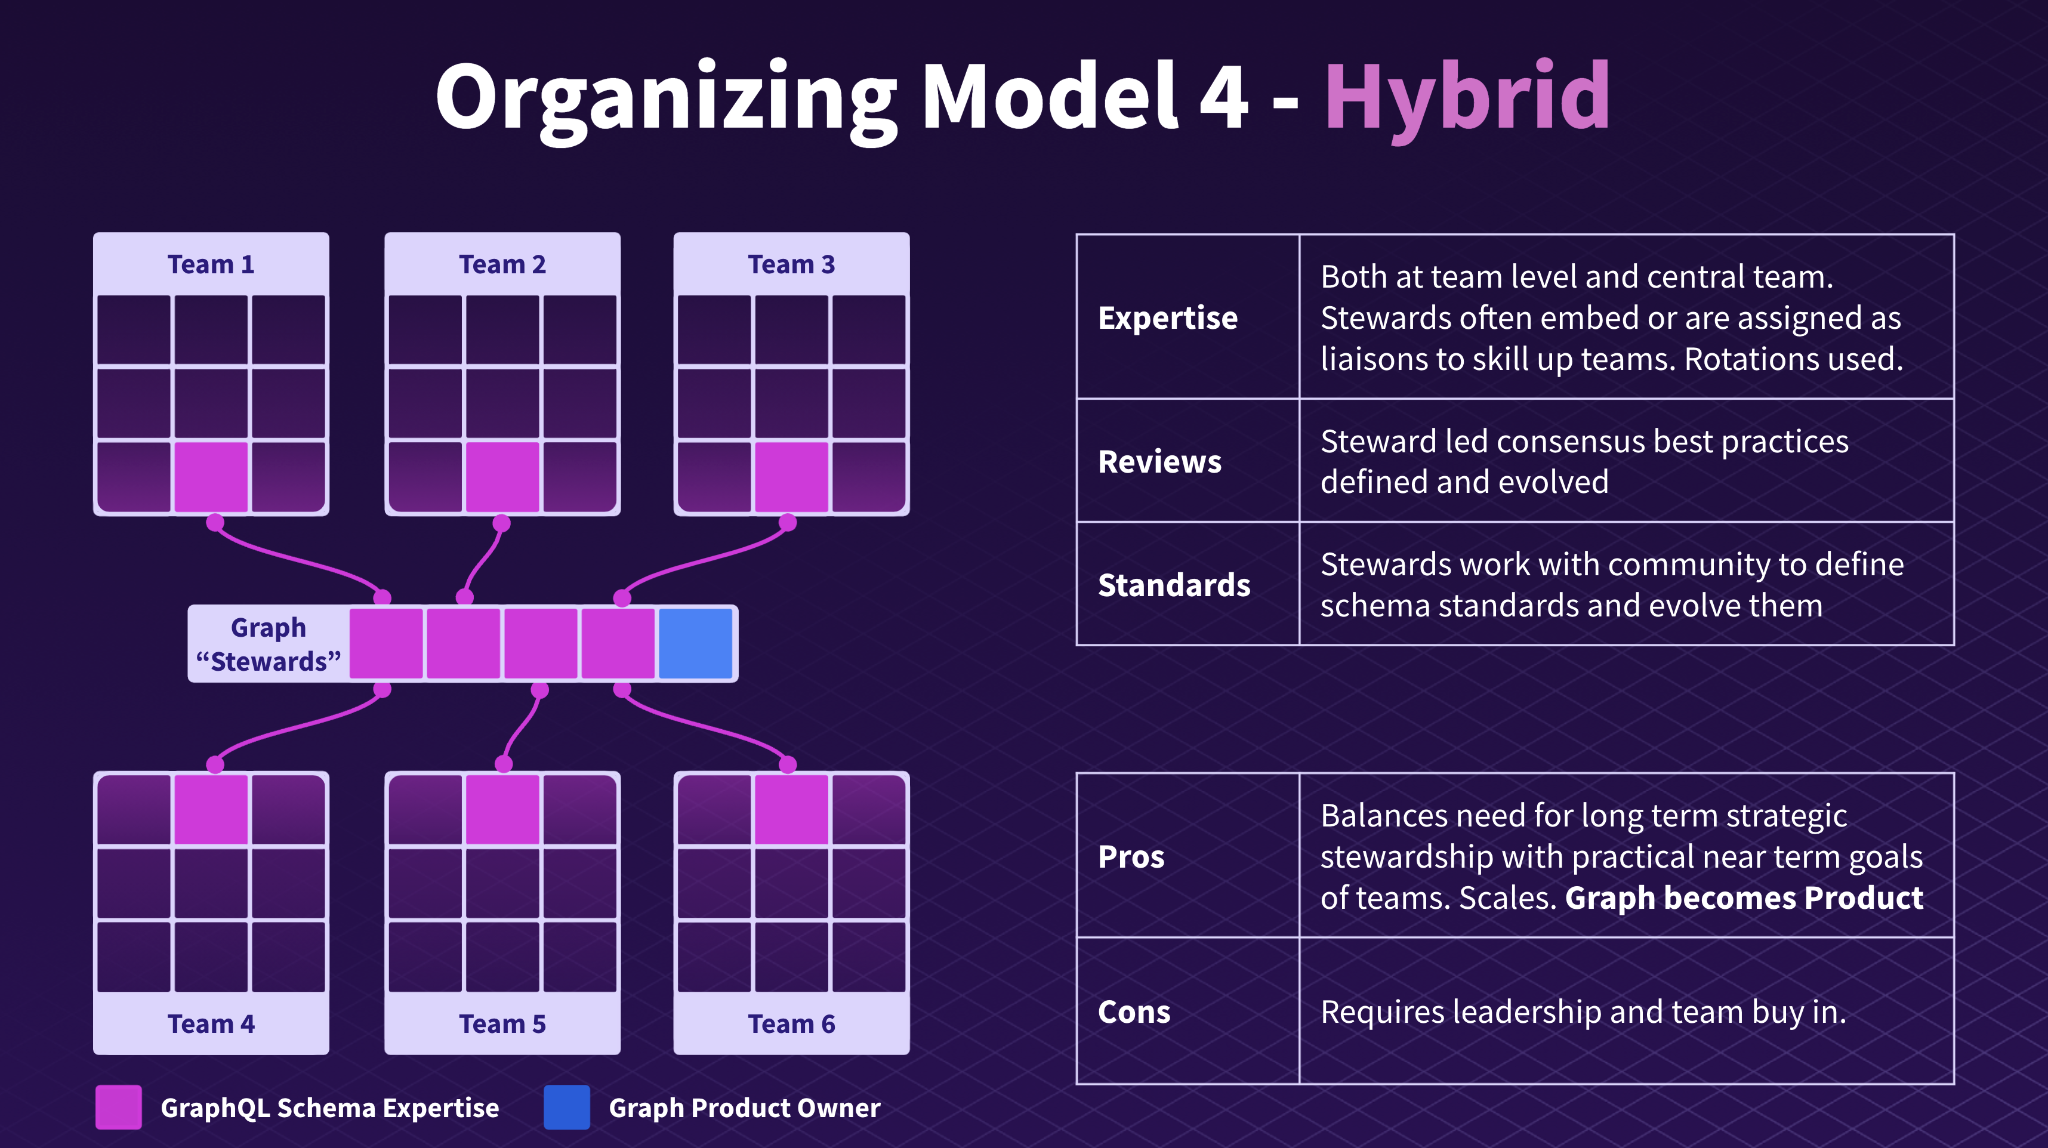 Diagram of organizing model 4, a hybrid model. Image summarizes this model and some of the pros and cons.